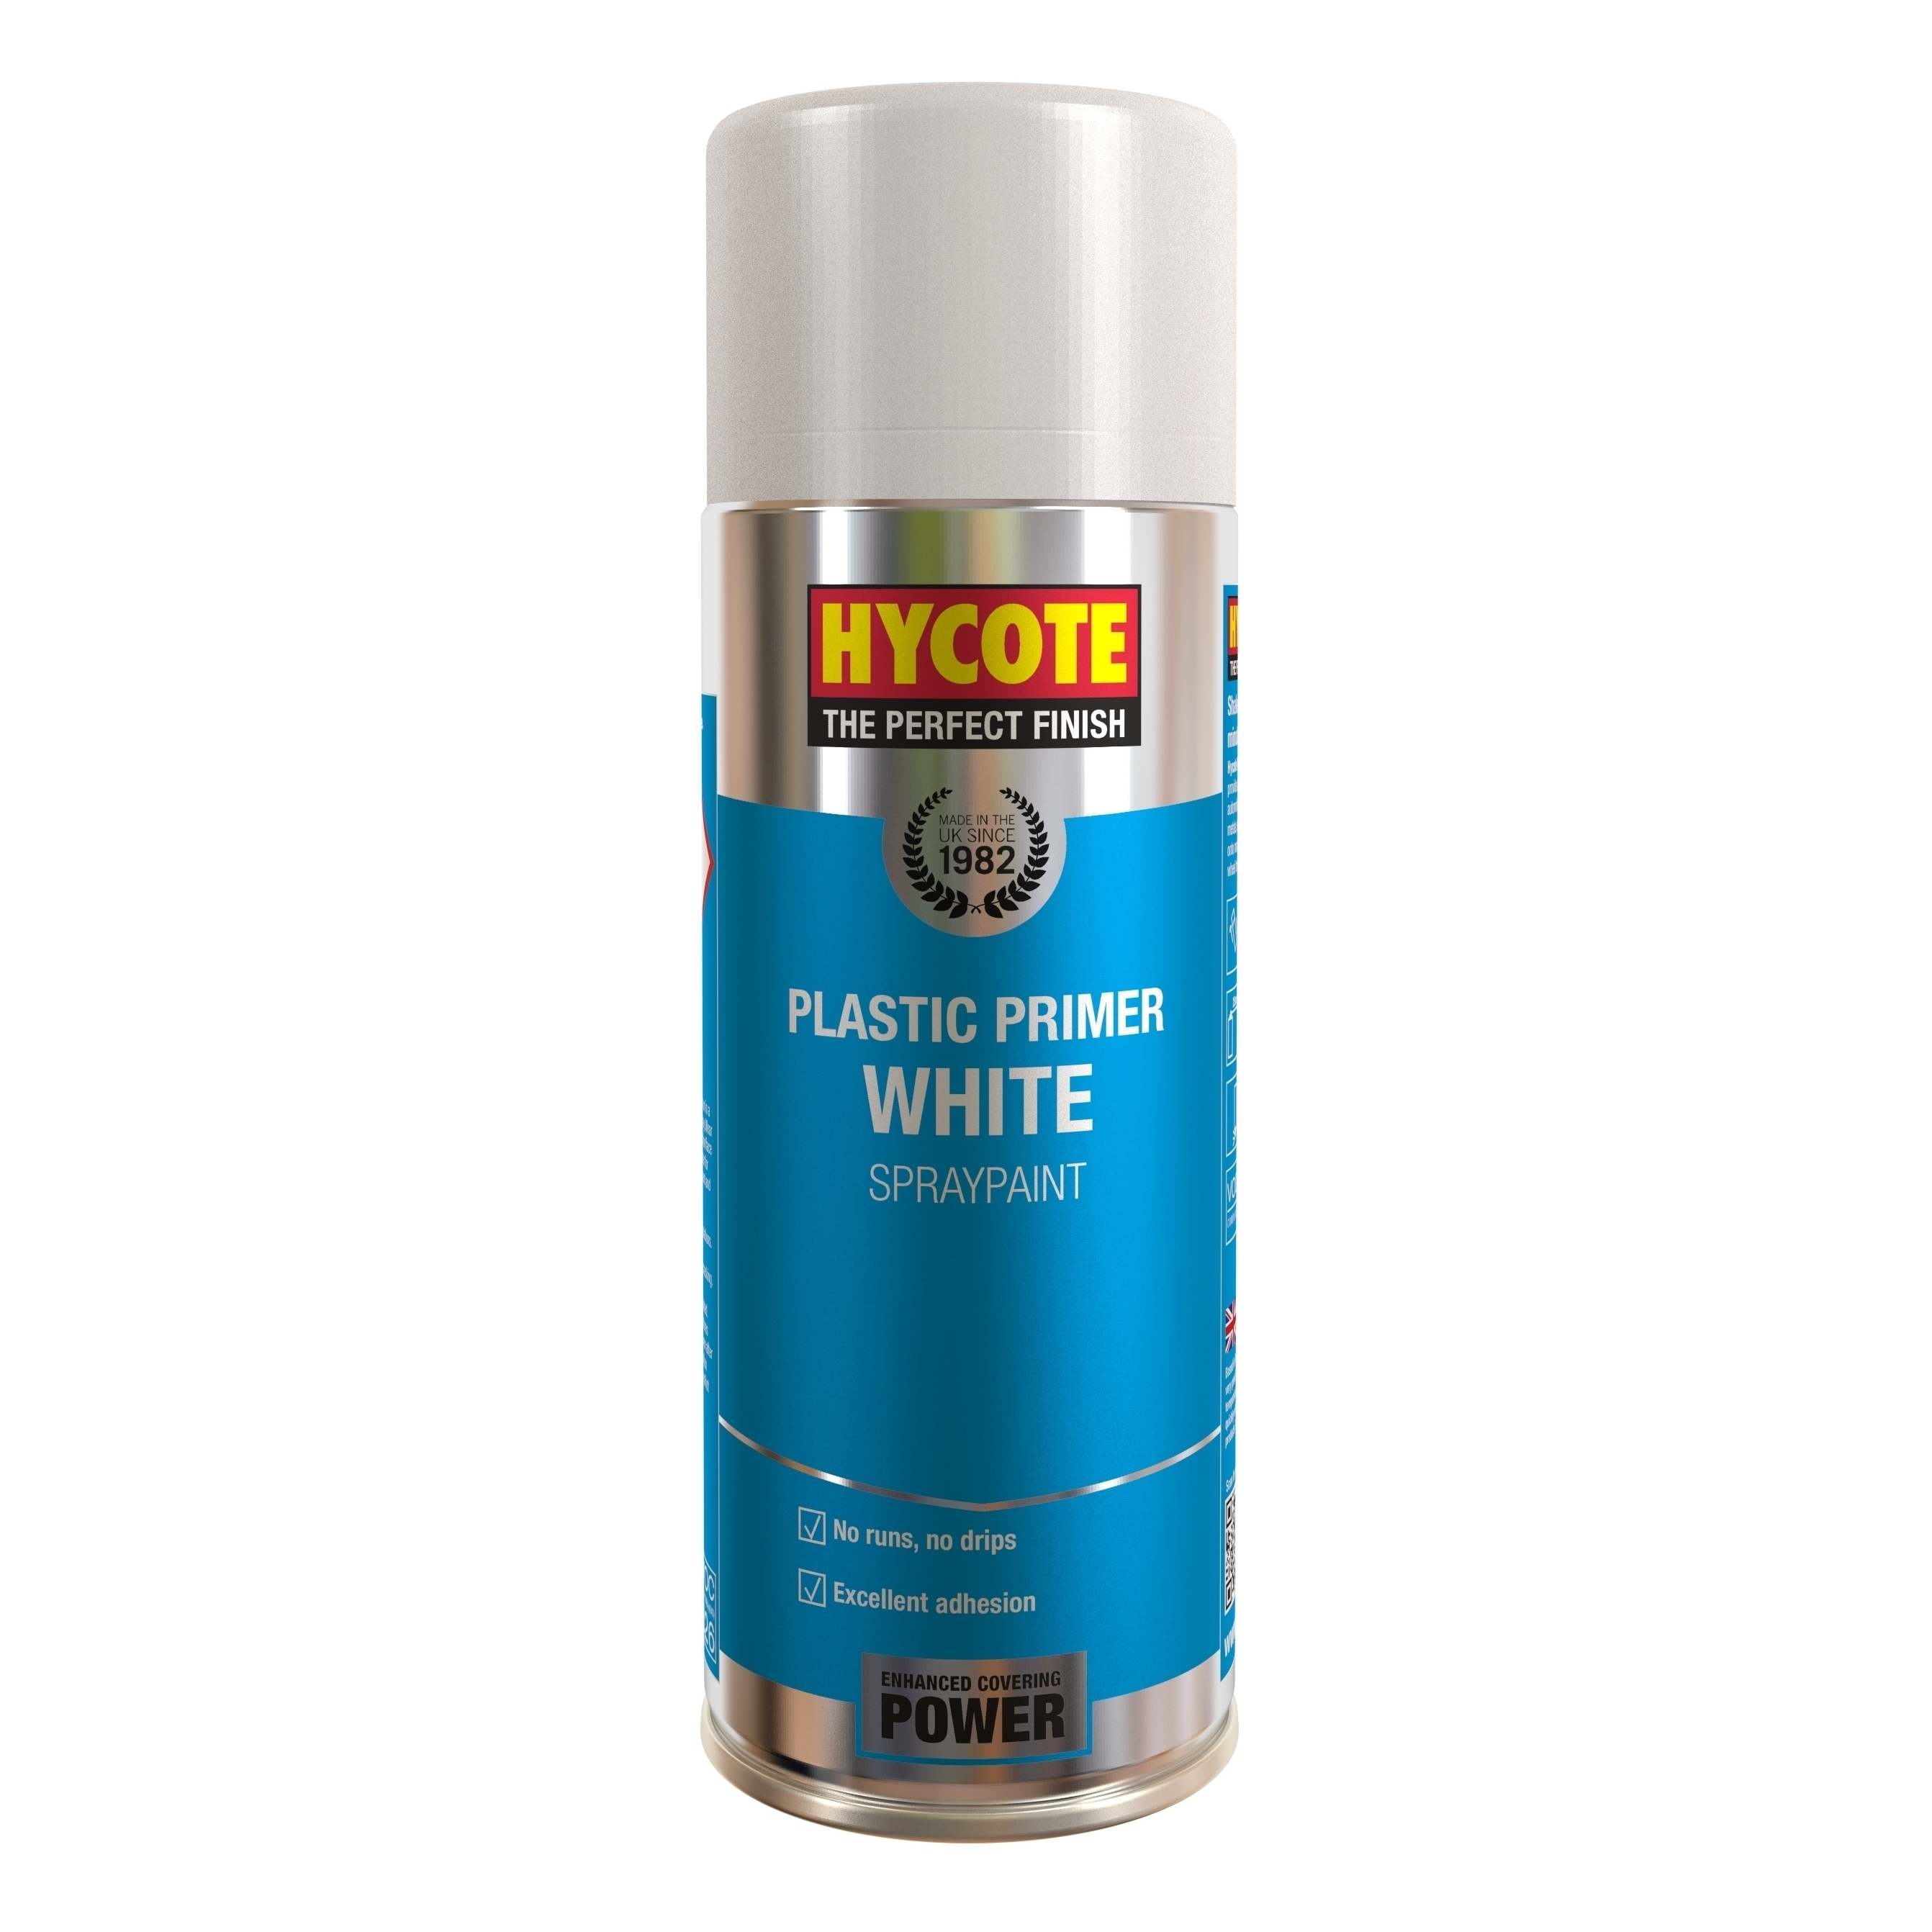 Hycote white plastic primer 400ml 1 x spray paint uk610 for Happy color spray paint price